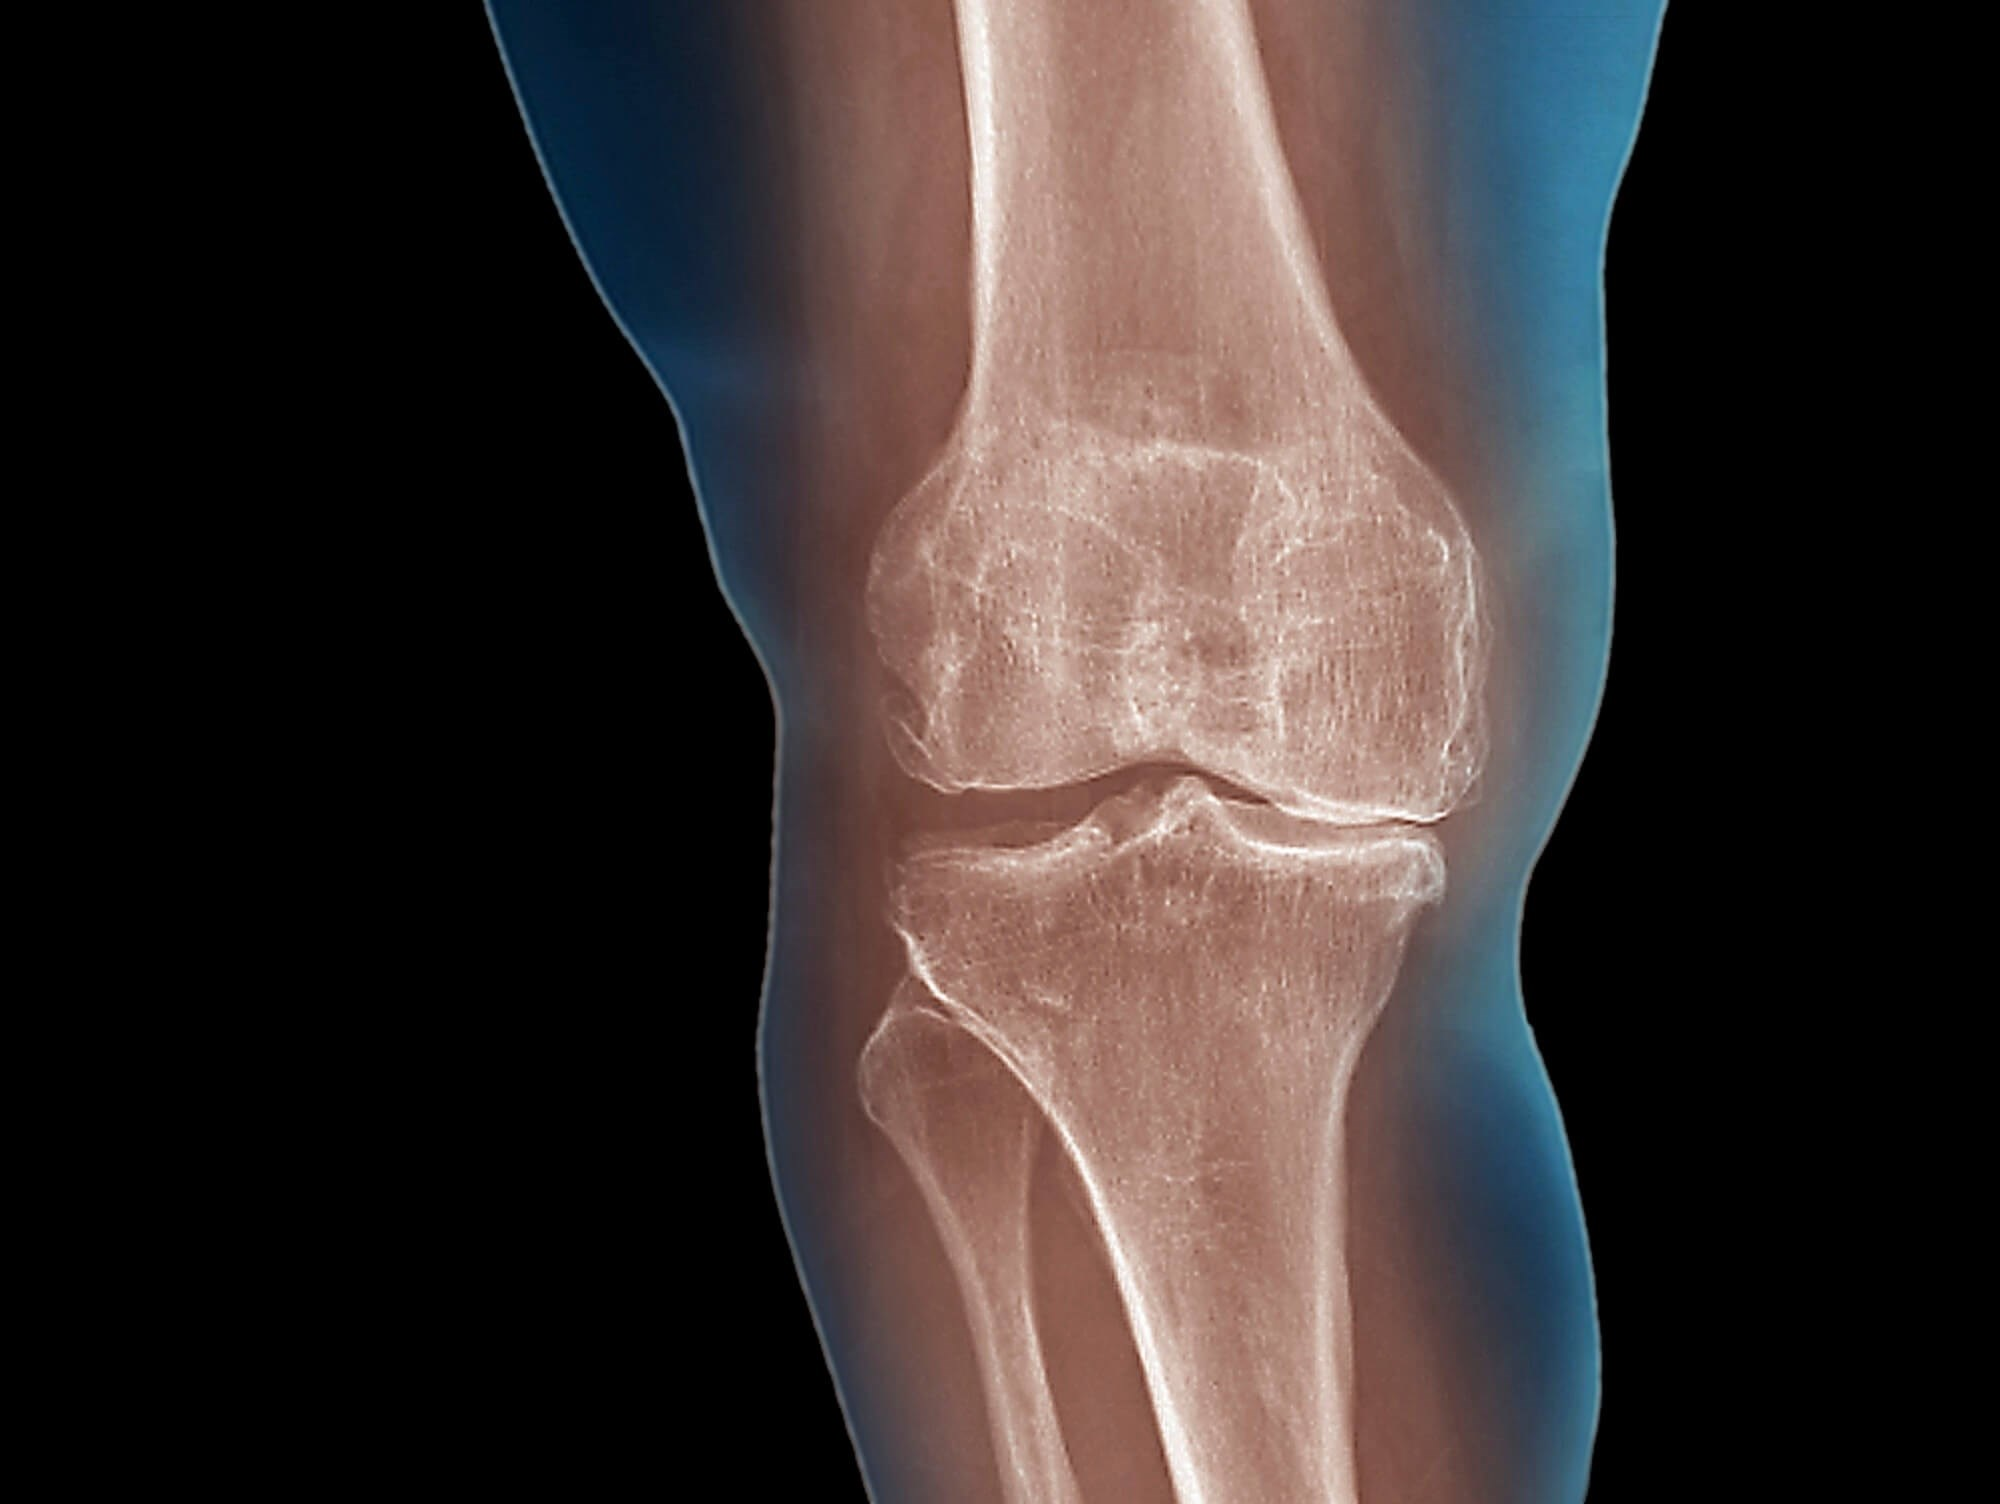 At 24 weeks, improvements seen in pain, function for osteoarthritis patients who did patellar mobilization.